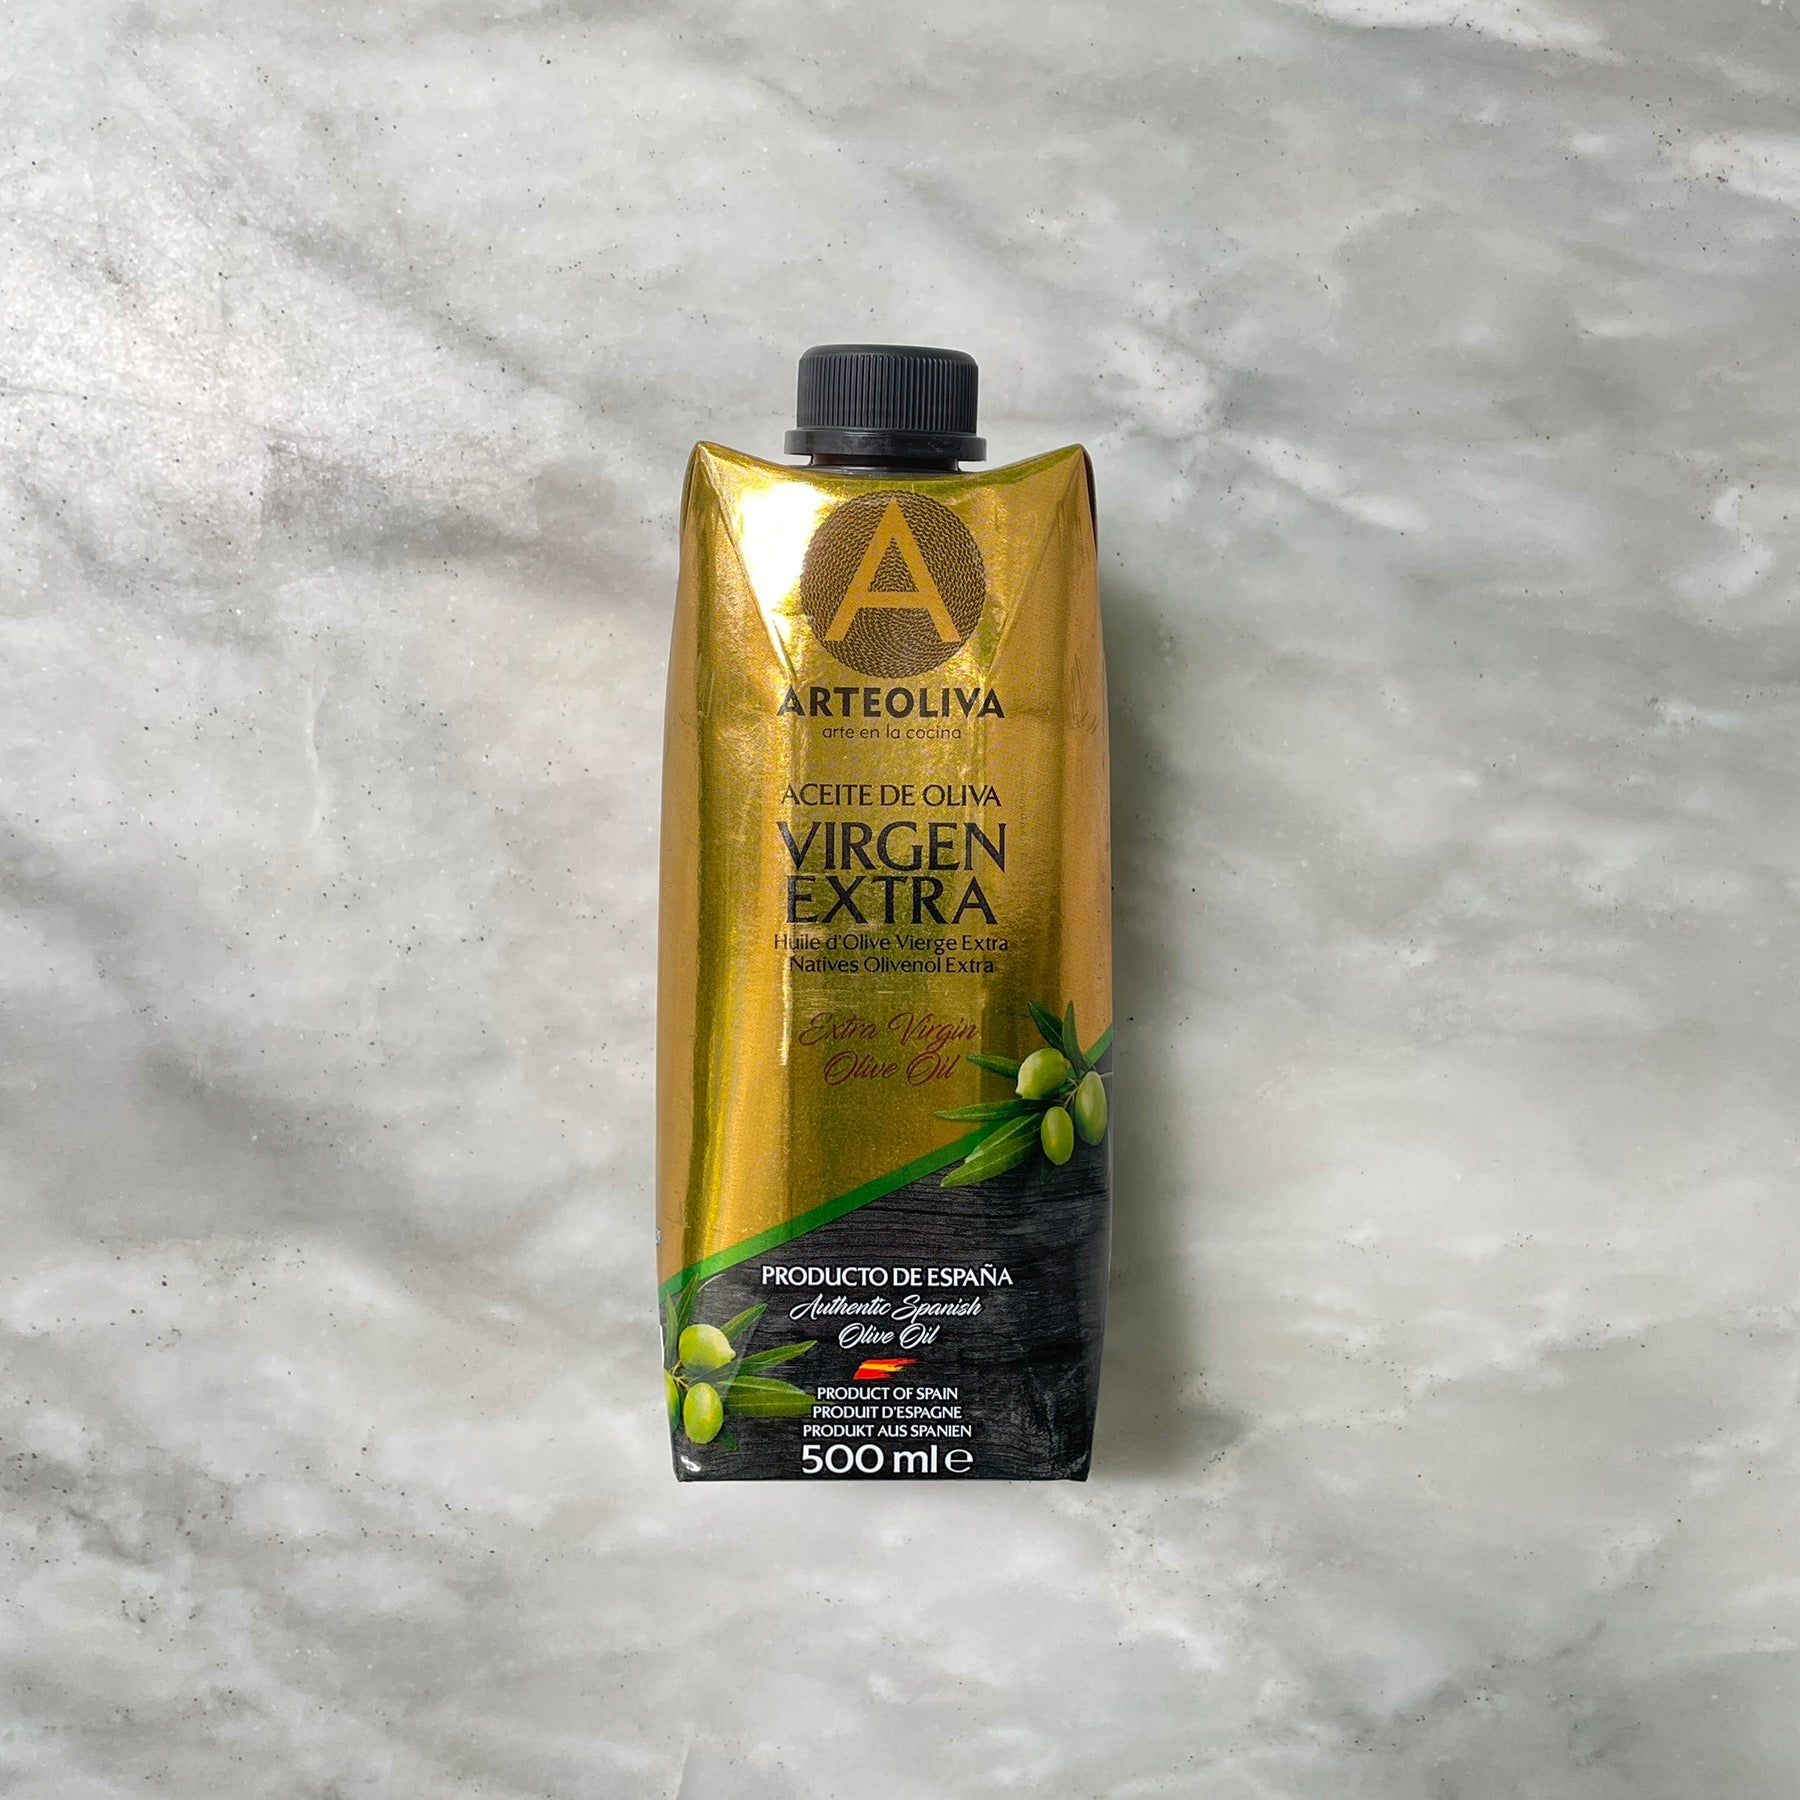 Arteoliva Olive Oil Extra Virgin